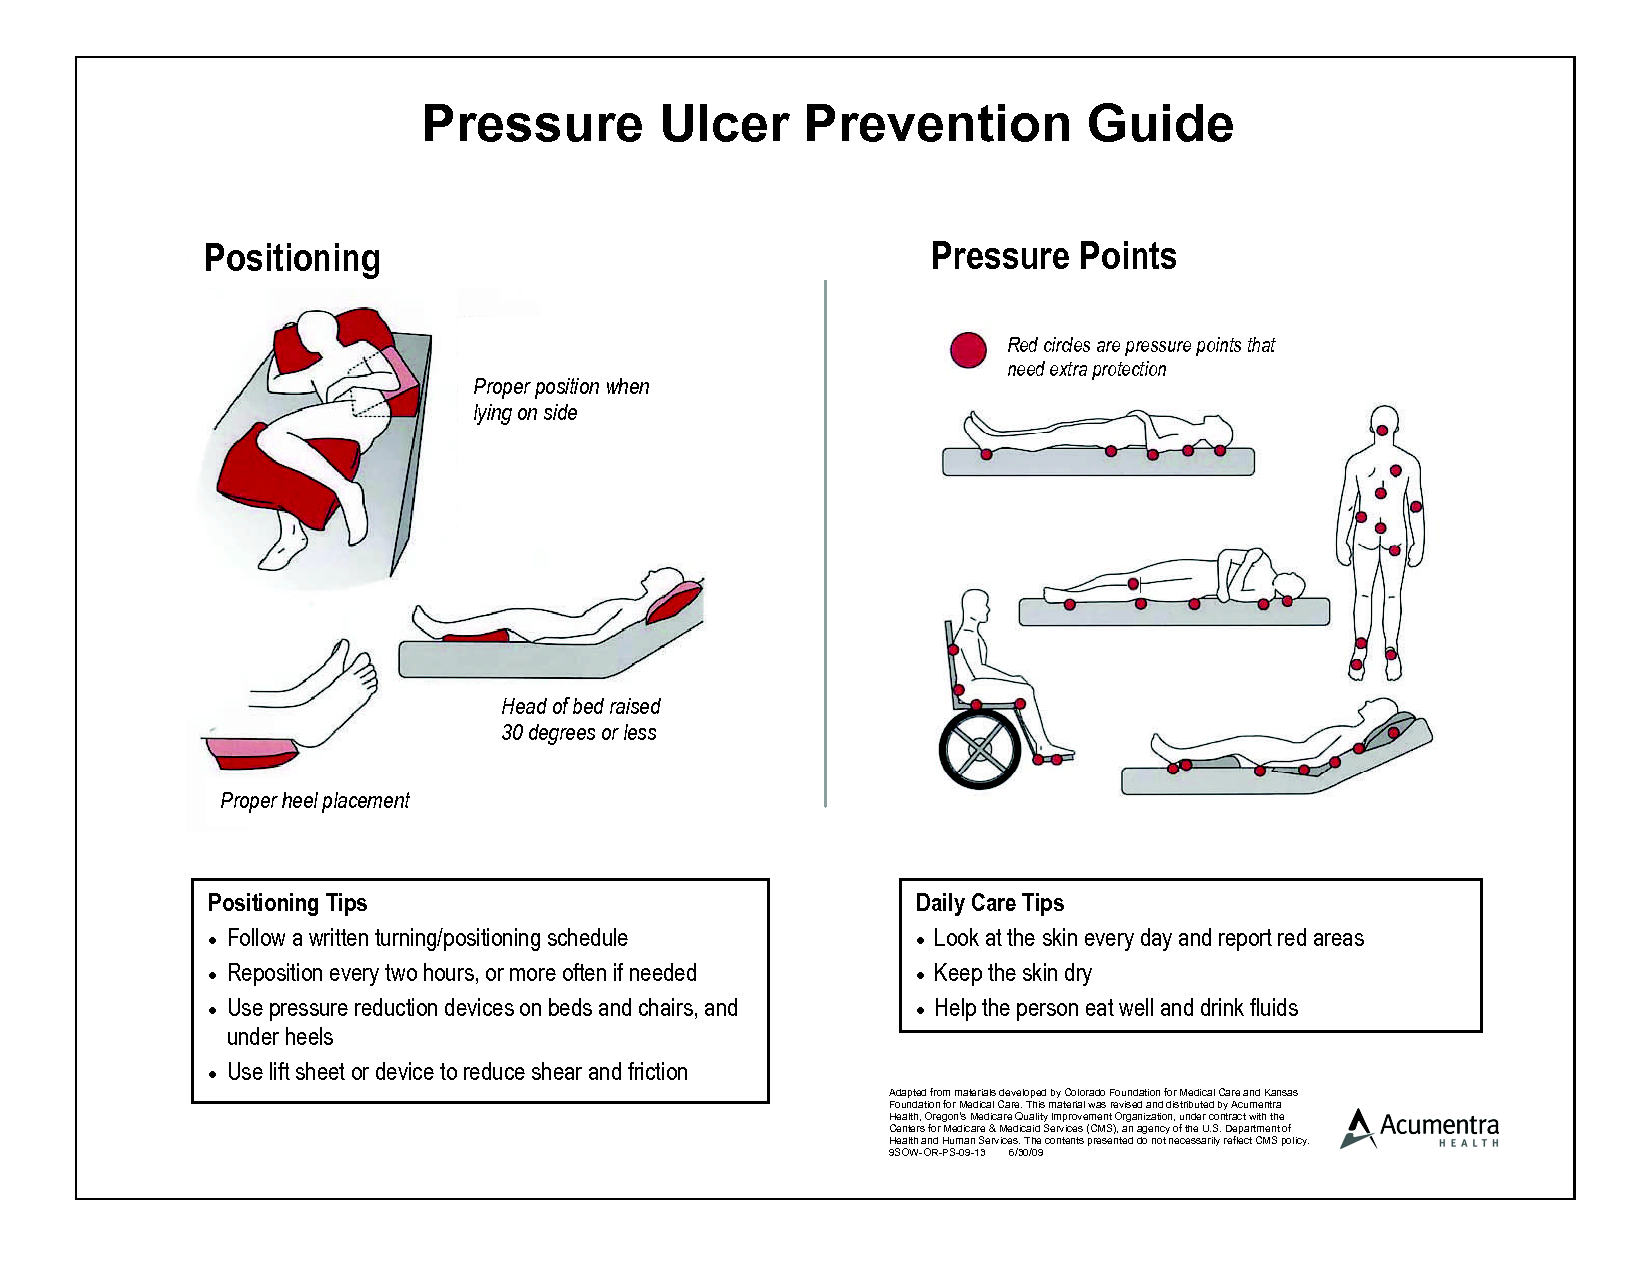 prevention and treatment of pressure ulcers The swedish quality guidelines regarding prevention and treatment of pressure ulcers were not fully implemented in clinical practice pressure-relieving support surface and less than one-third were regularly repositioned [29] these studies and others have also found inadequacies and gaps in.